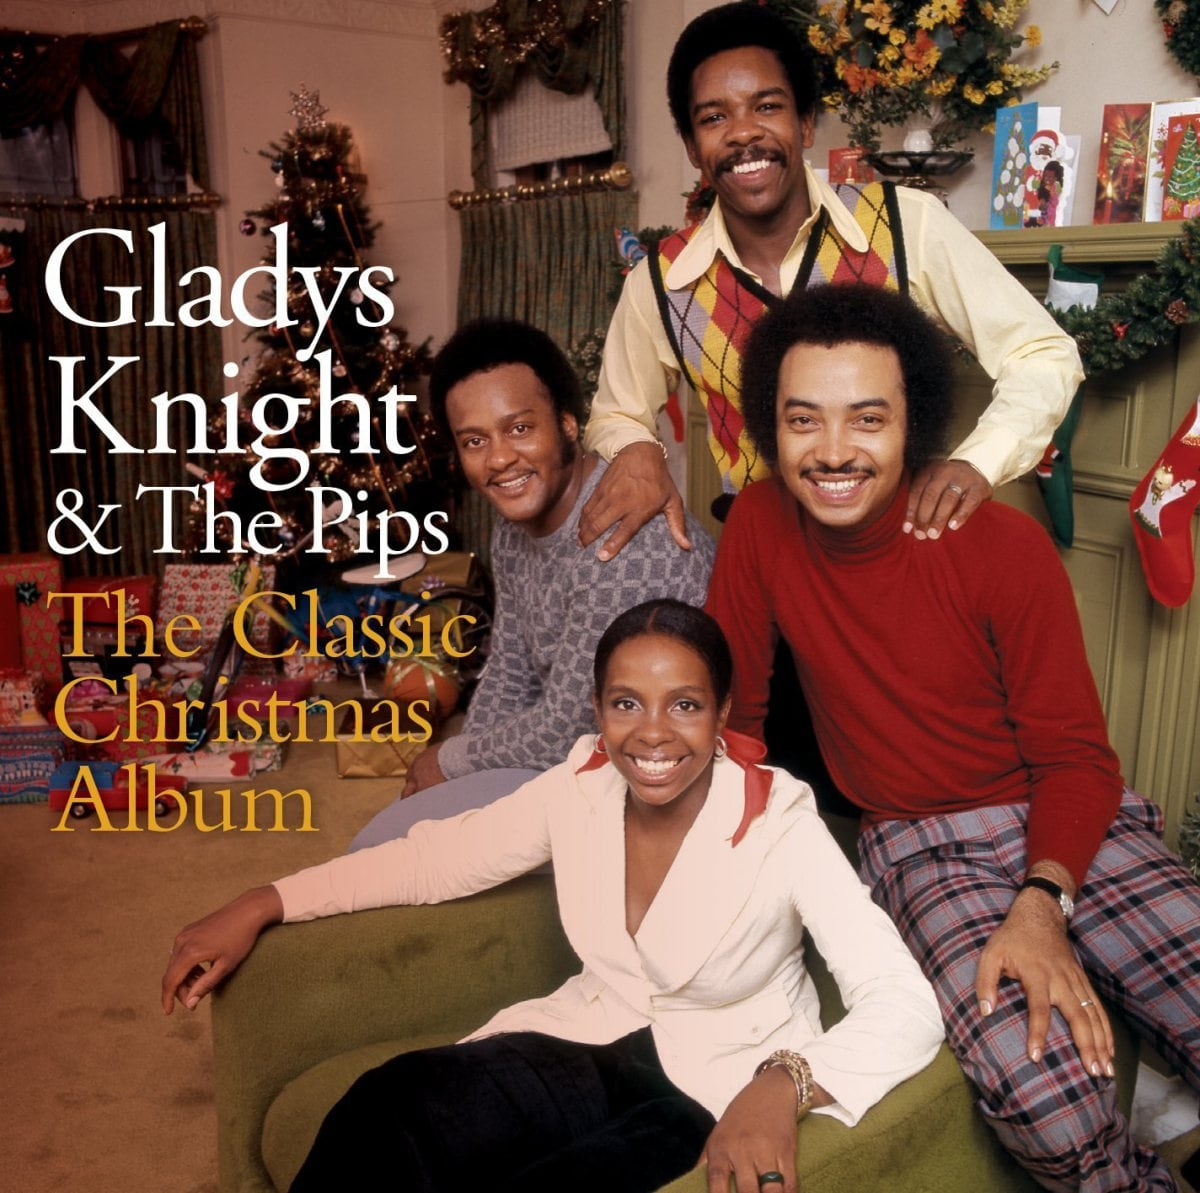 gladys-knight-the-pips-the-classic-christmas-album